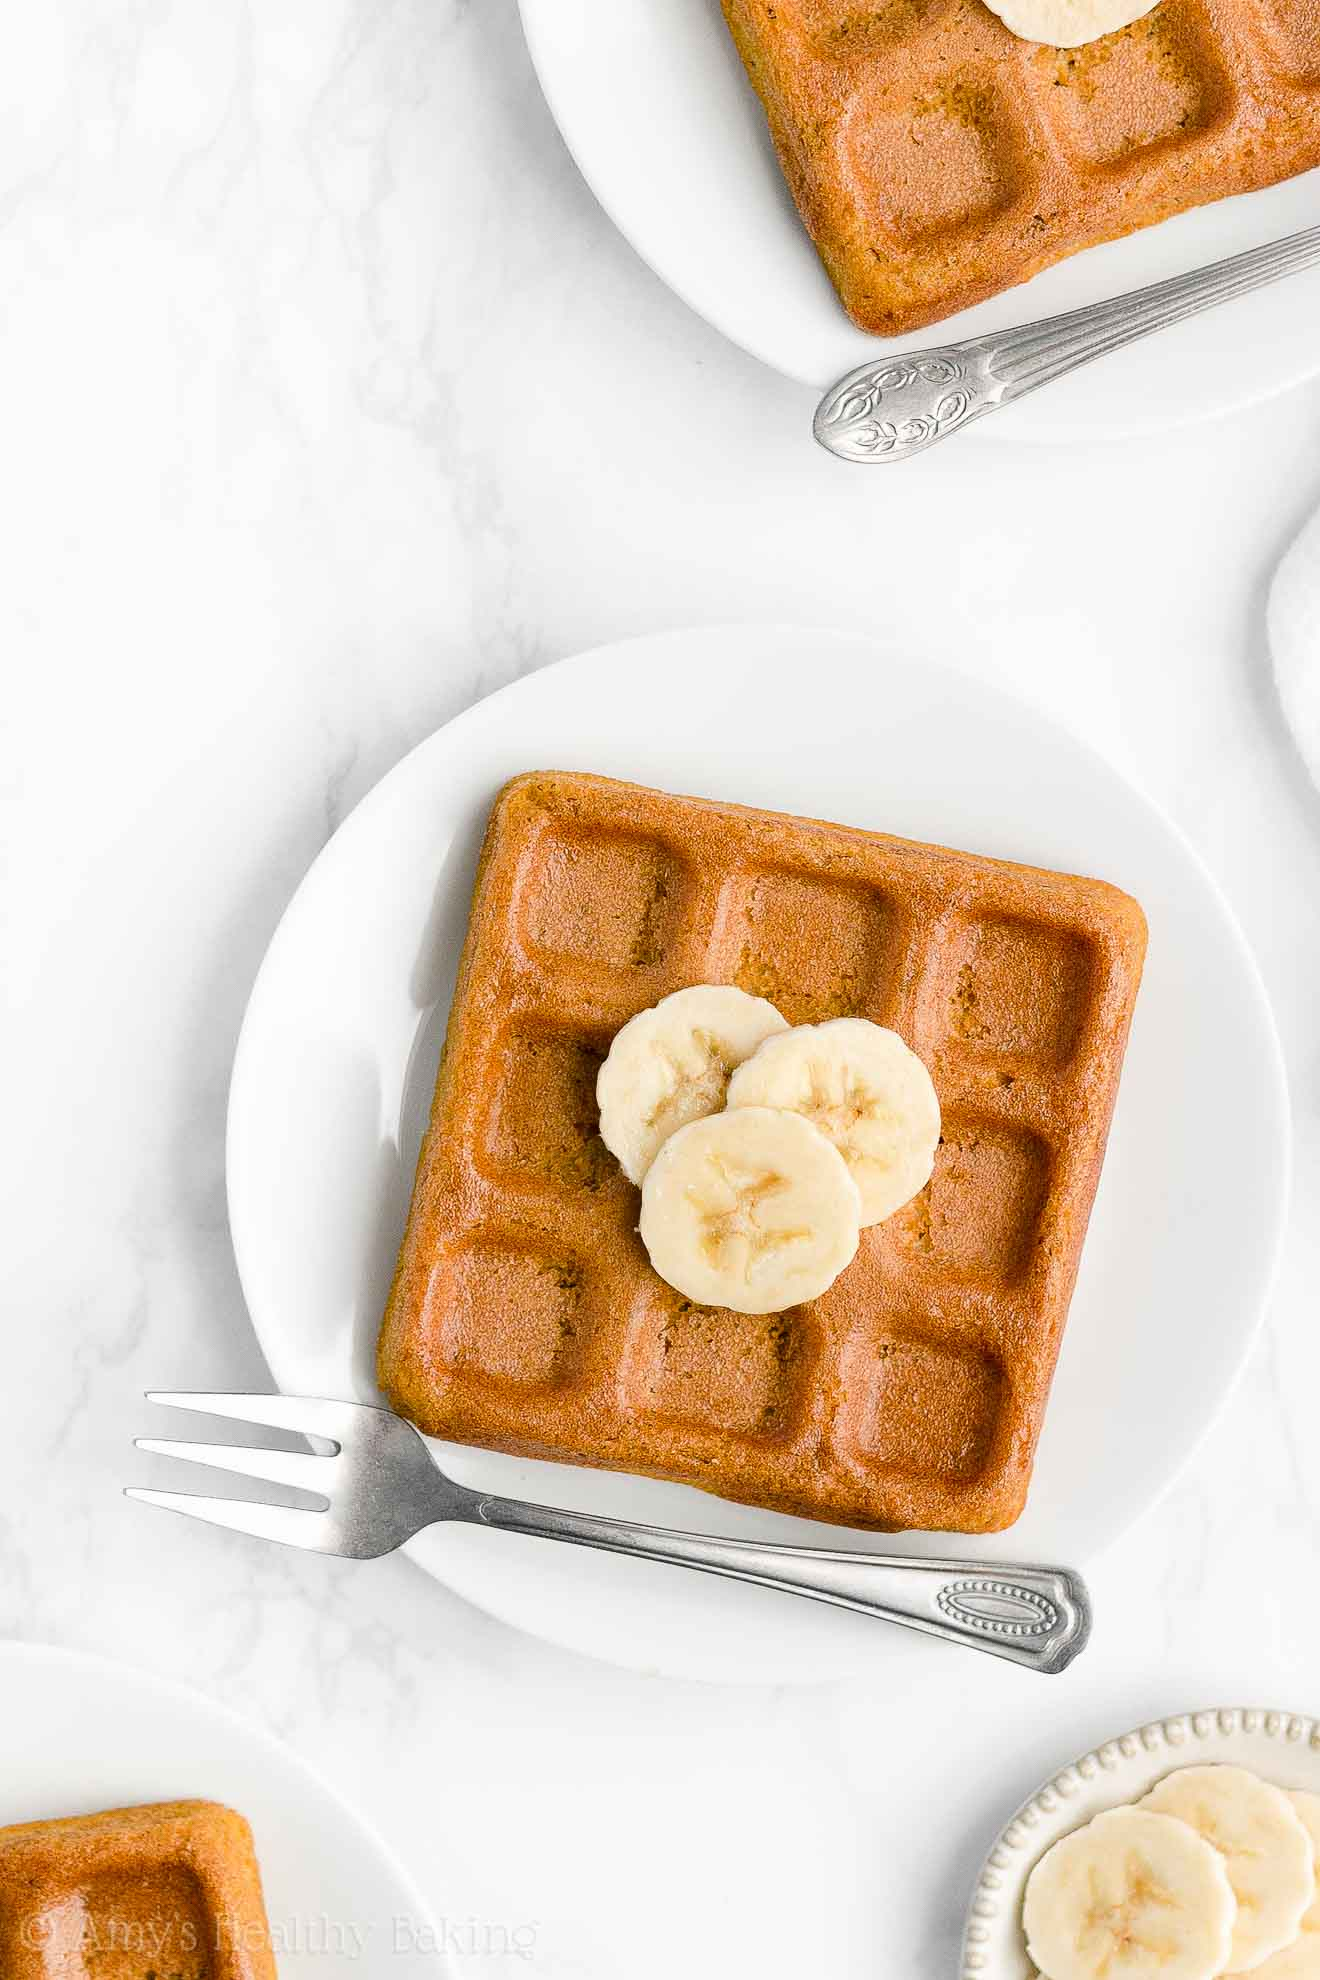 Best Easy Healthy Homemade Whole Wheat Clean Eating Crispy Banana Waffles